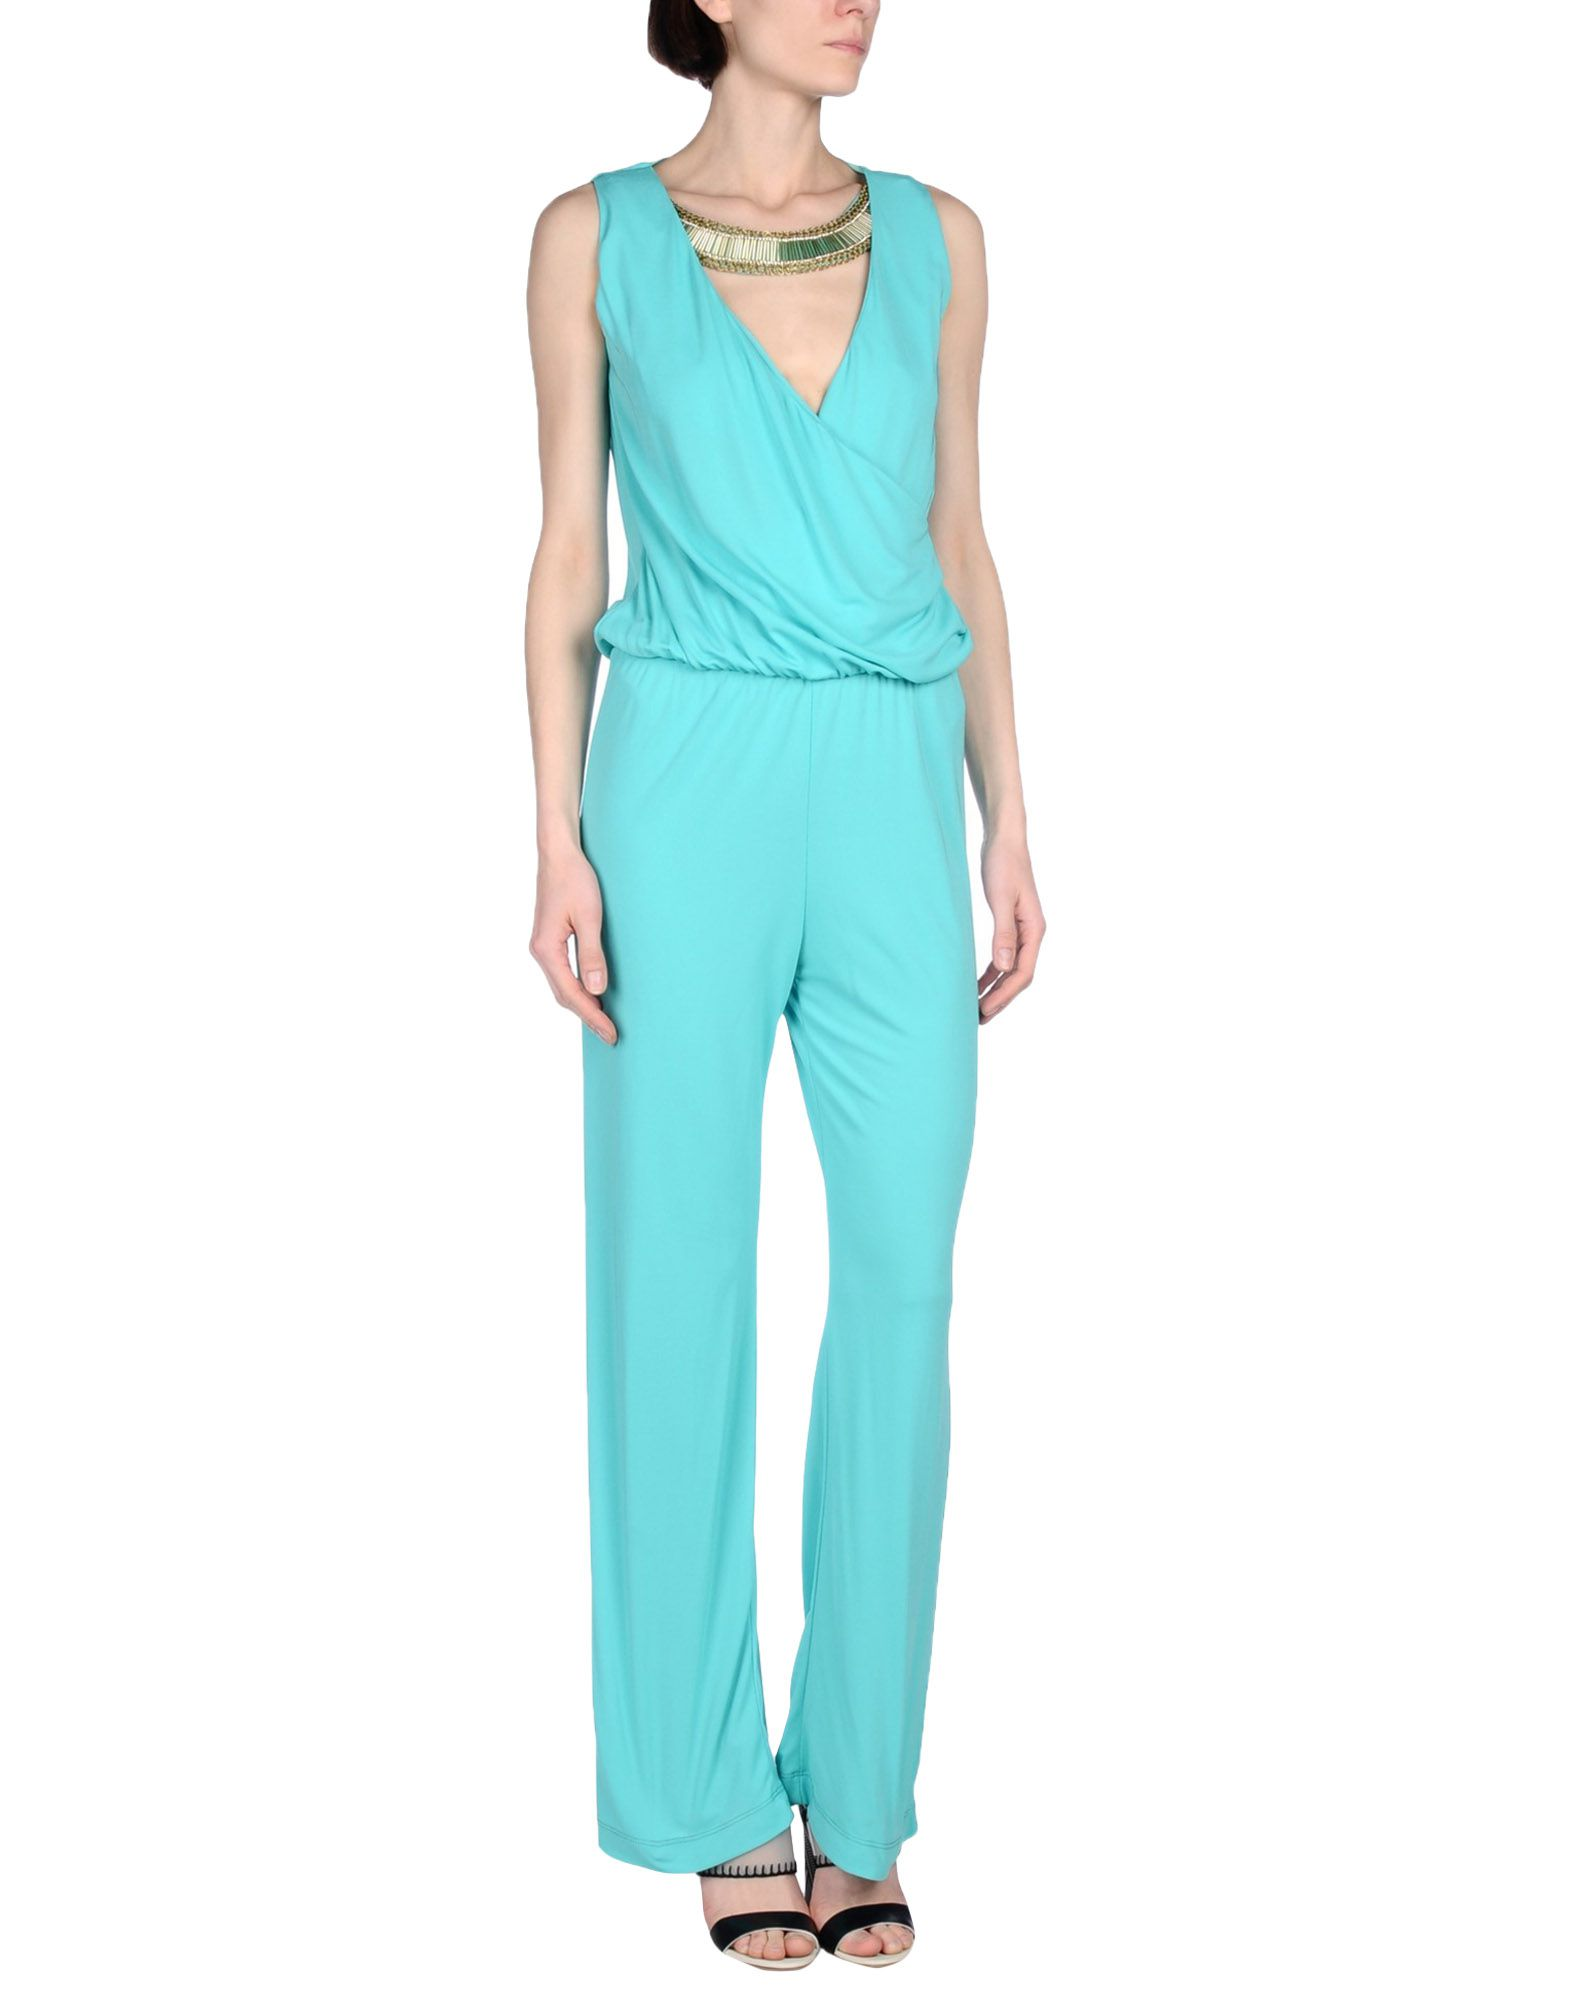 clips female clips jumpsuits